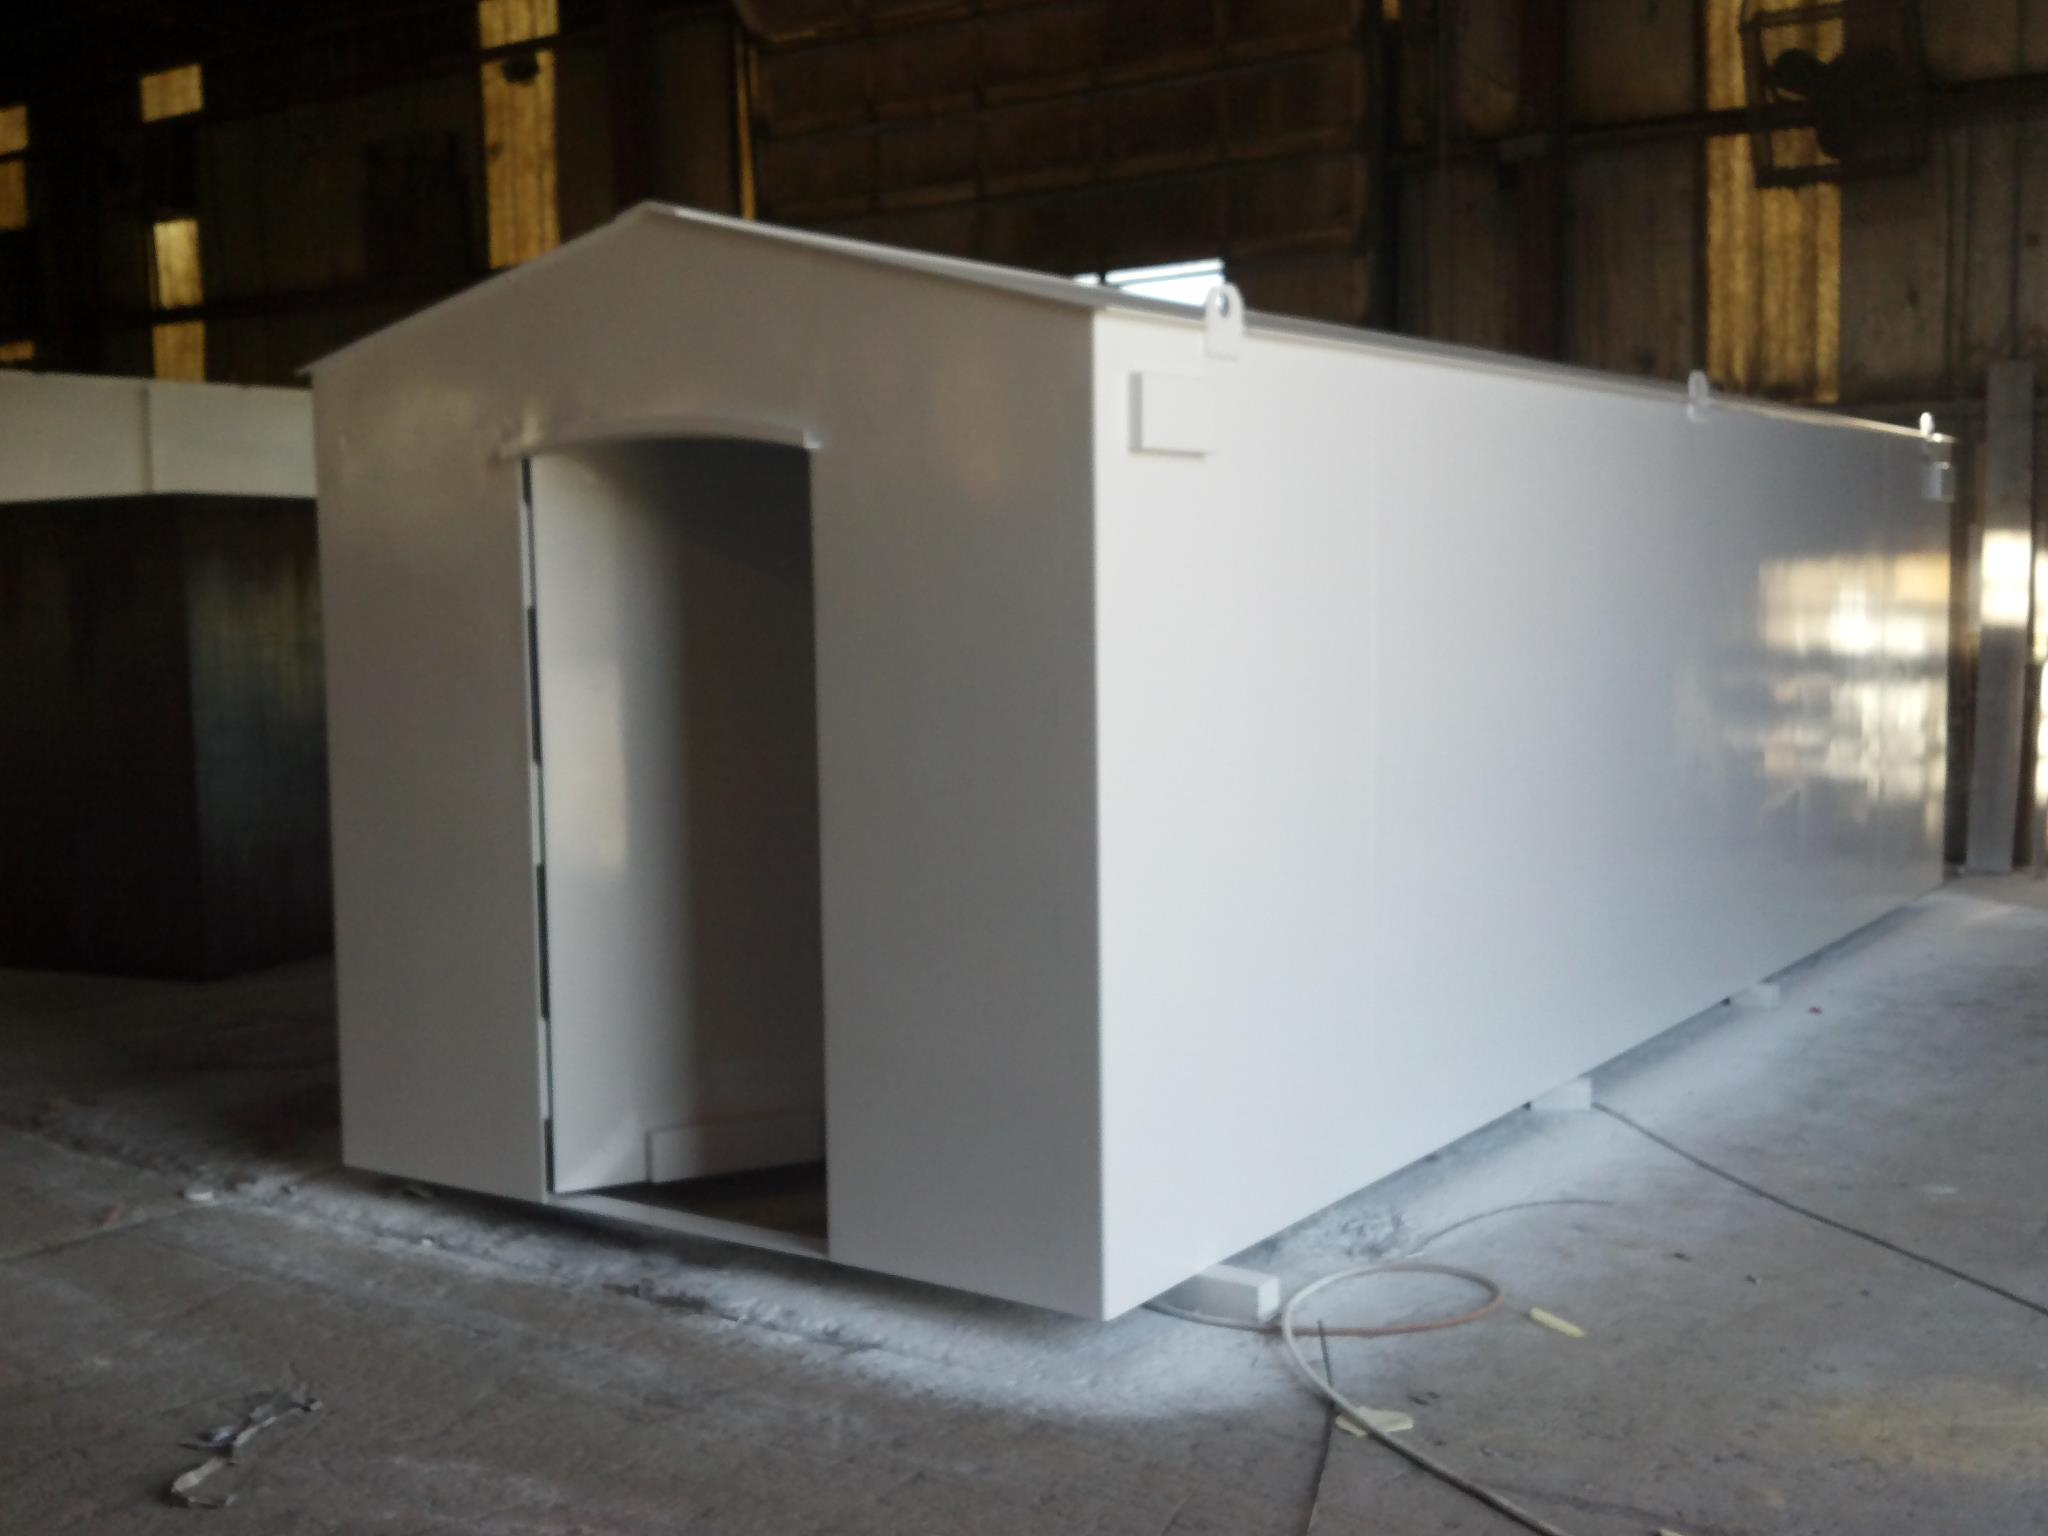 New 3x5 tornado safe room for compact small garages from for Garage safe room